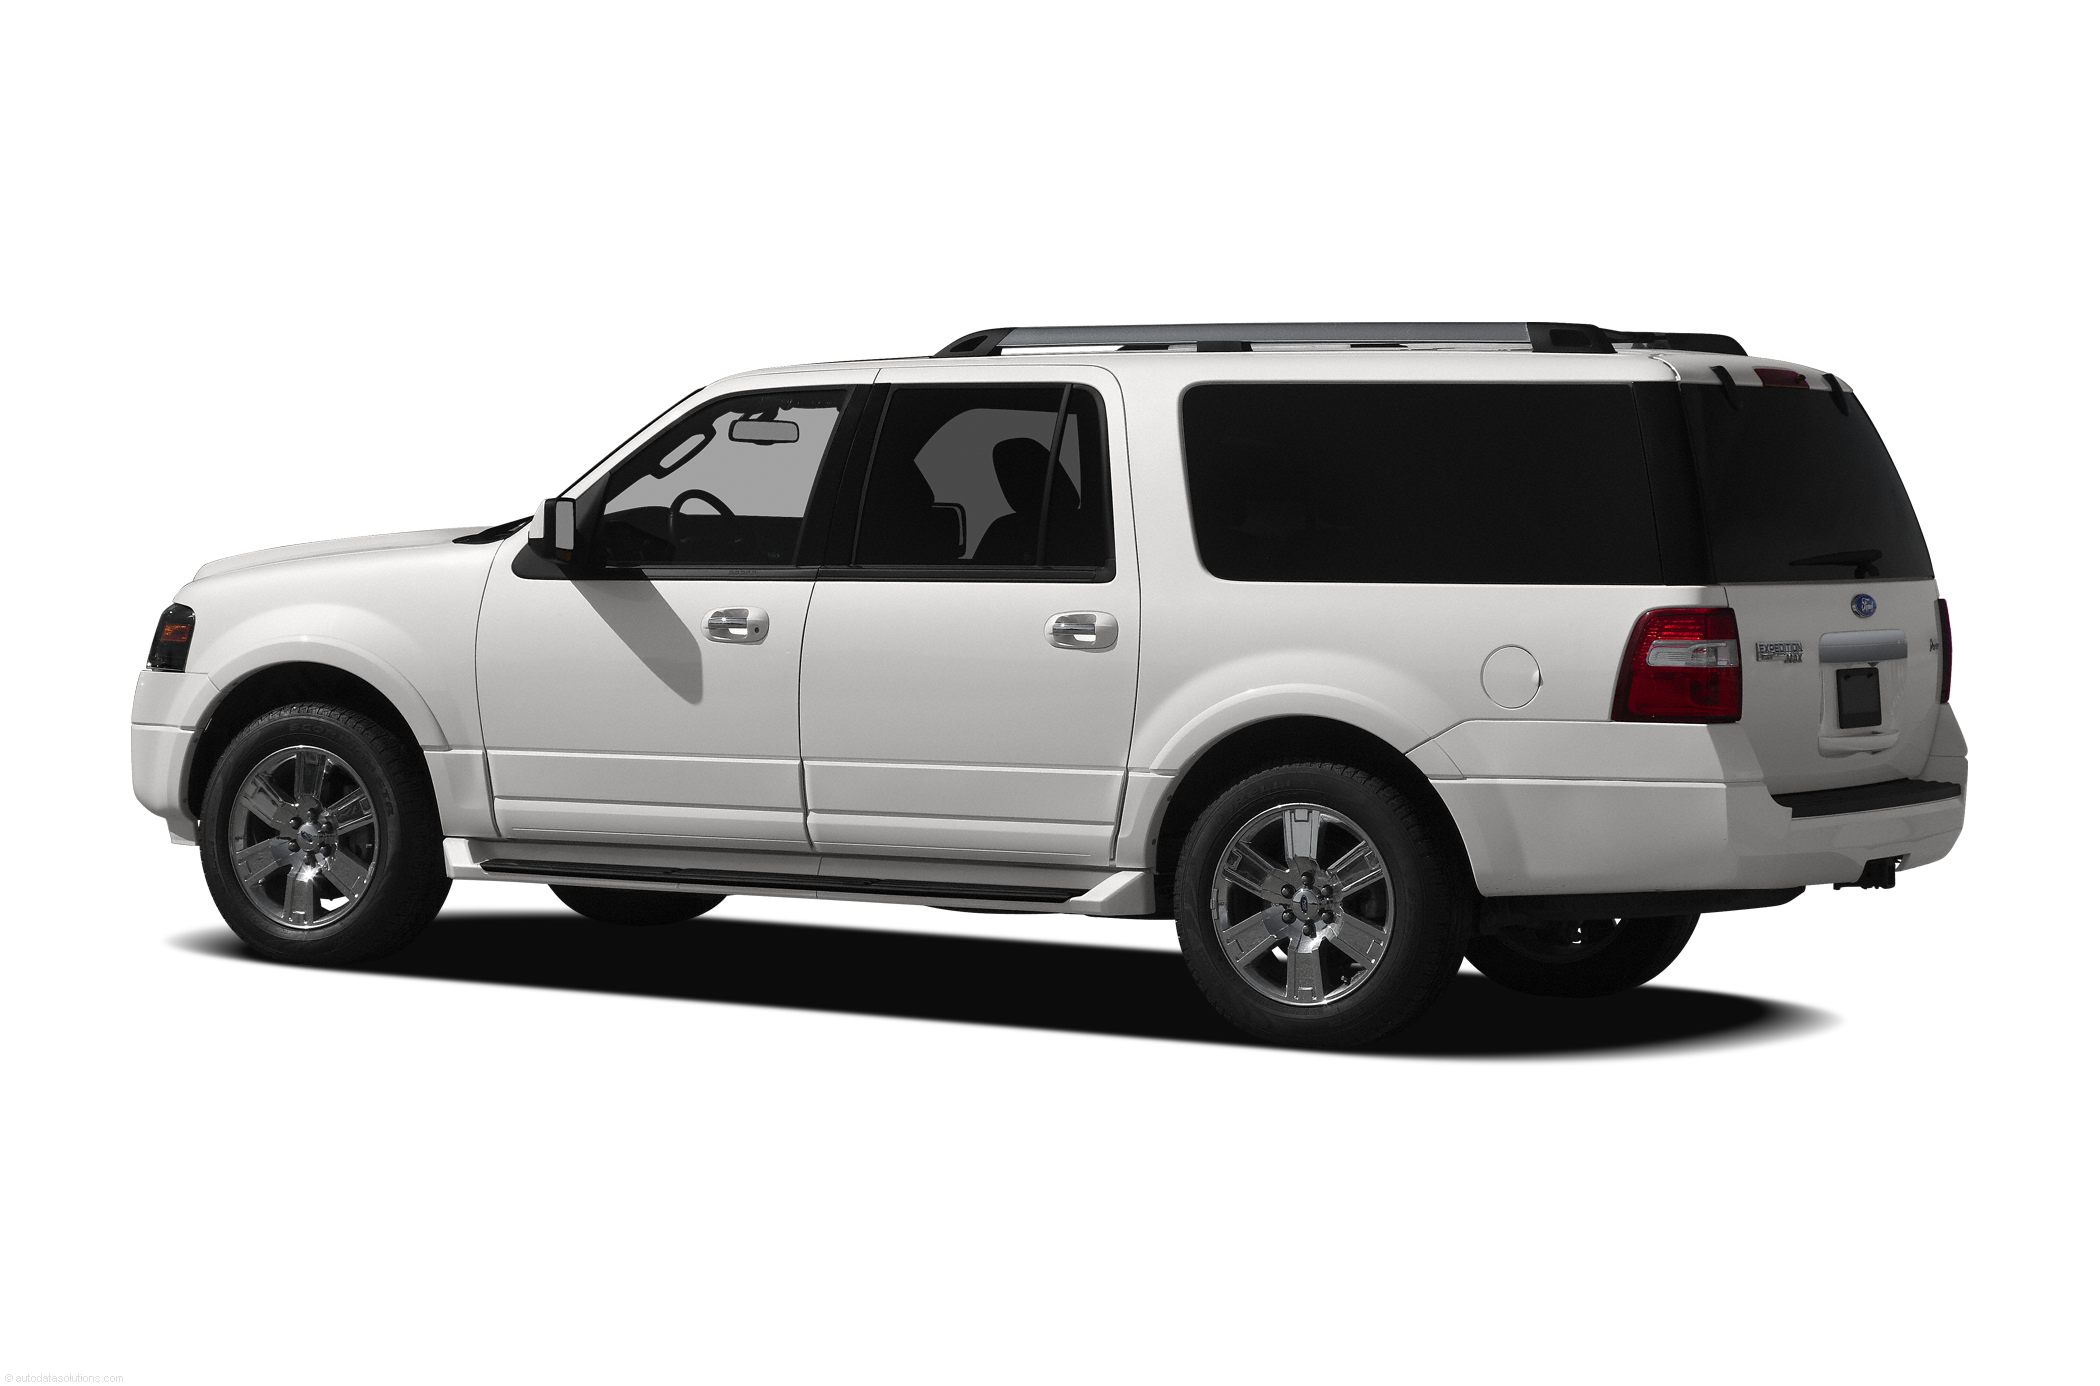 2011 Ford Expedition #4